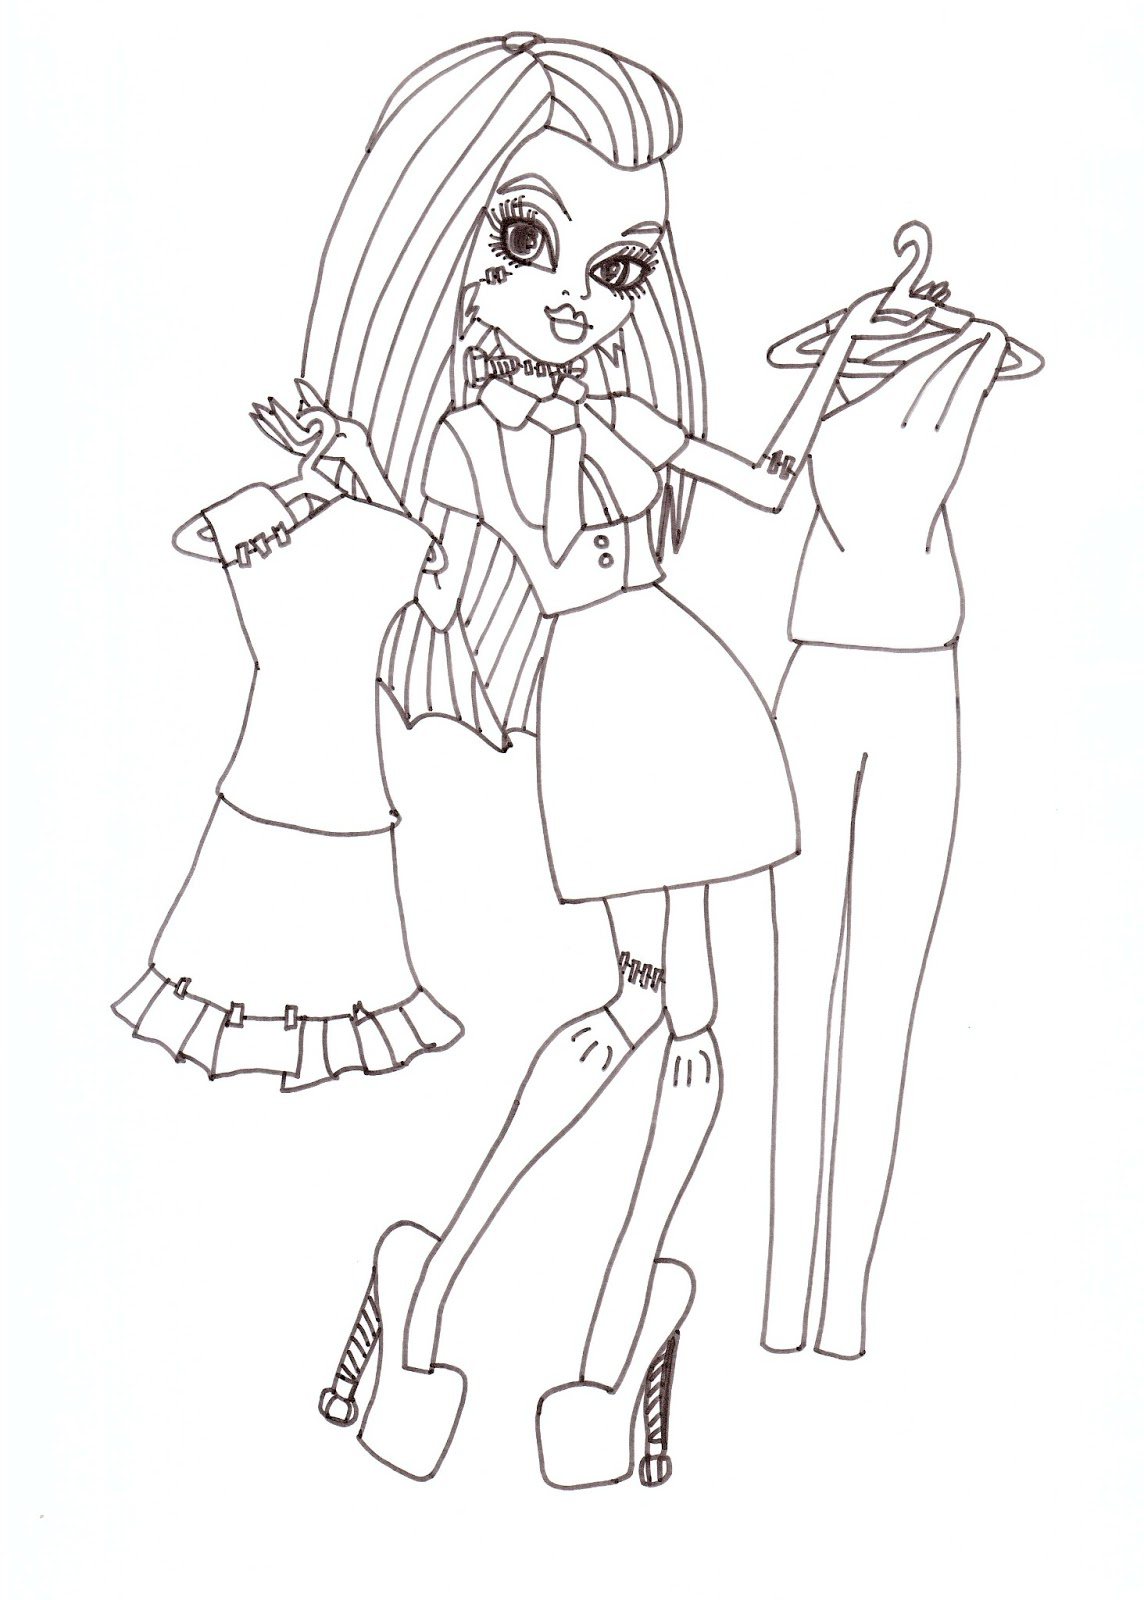 Vintage Fashion * coloring page | Fashion coloring book, Colorful ... | 1600x1144